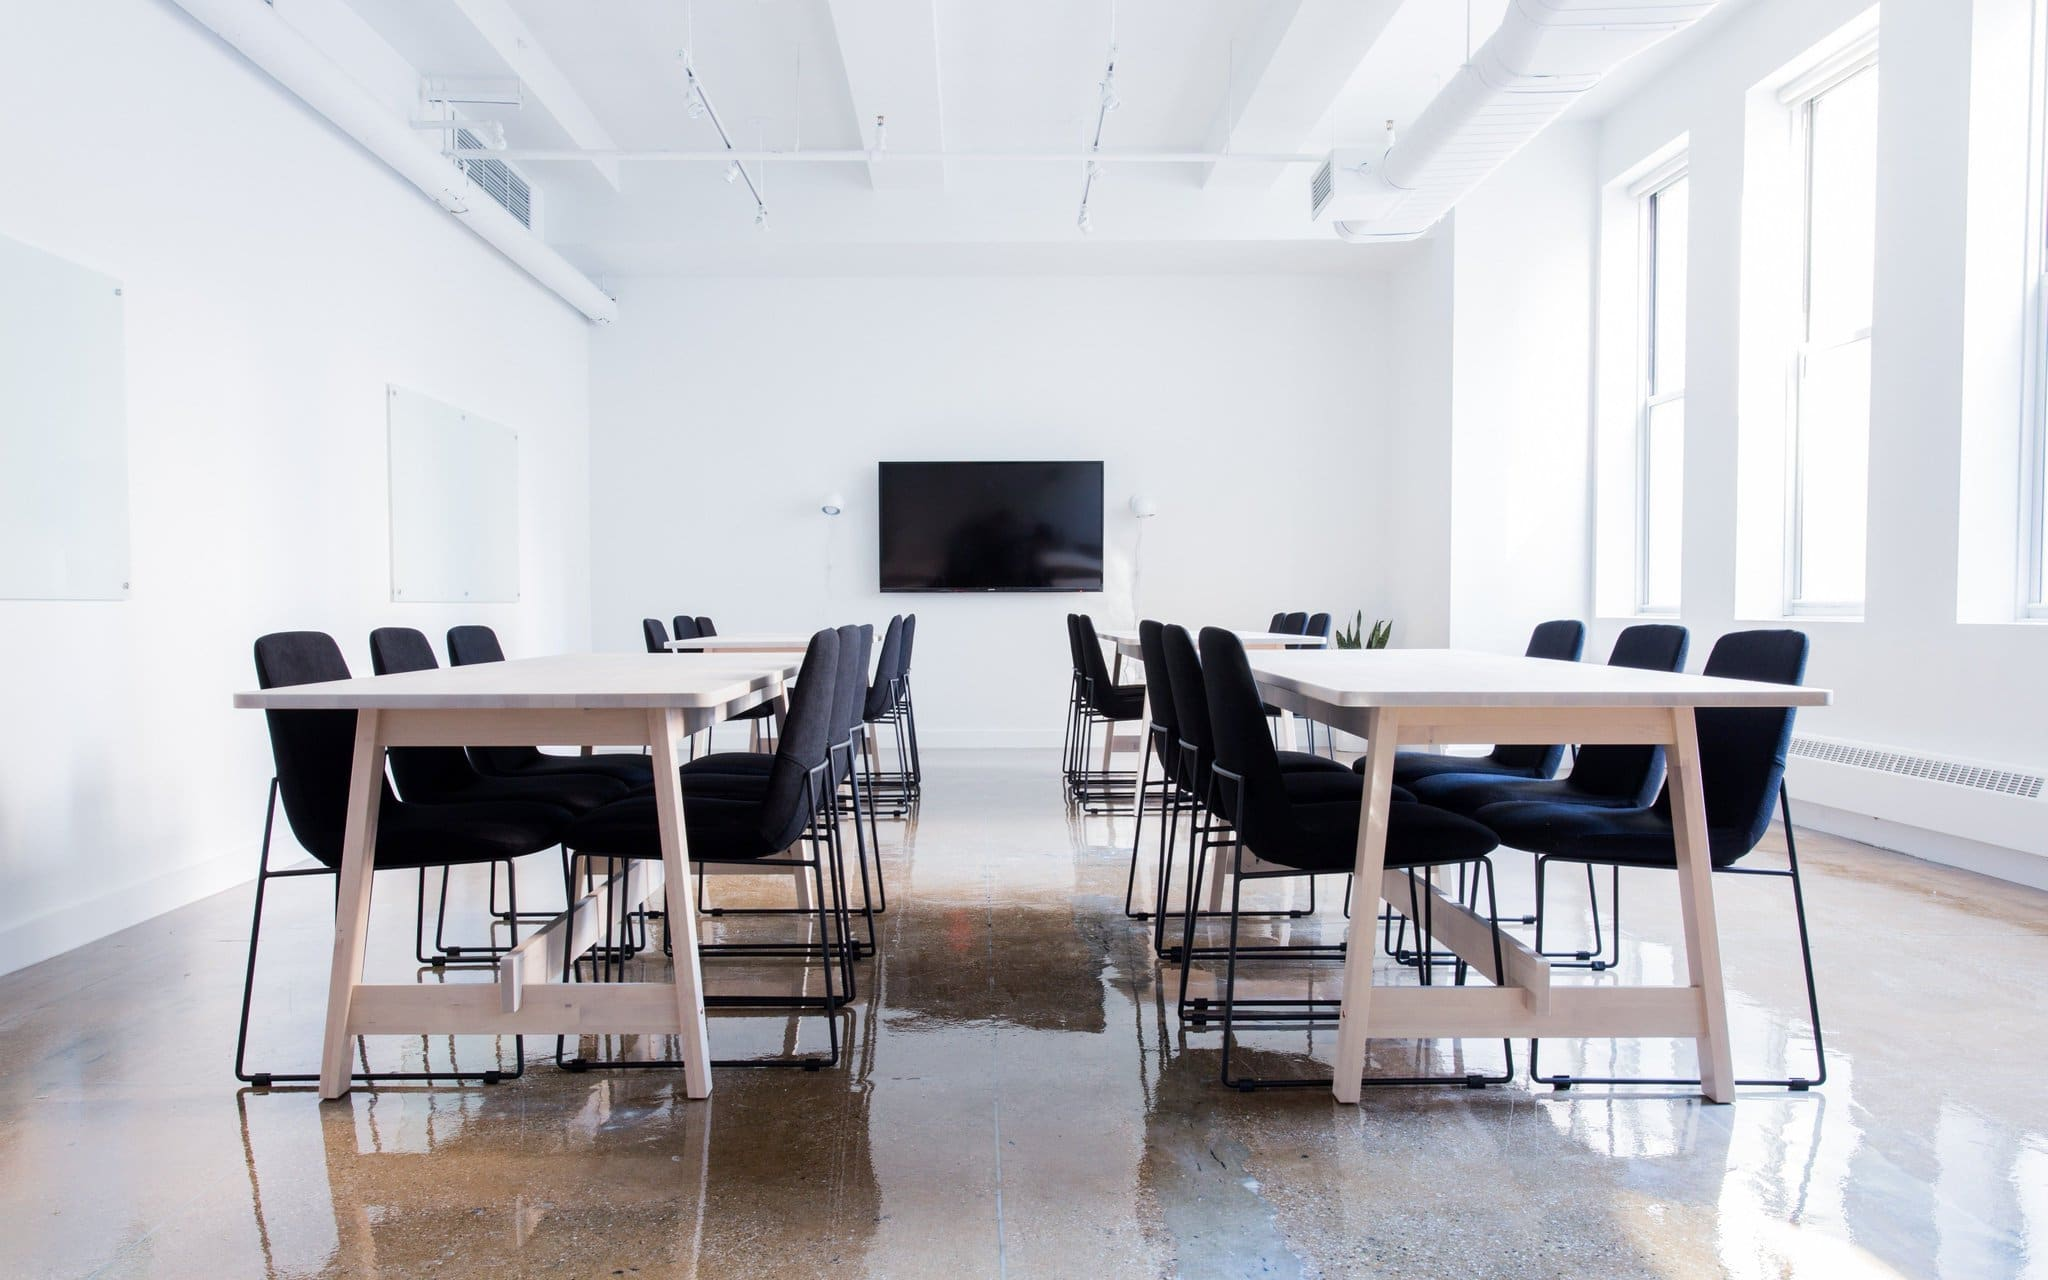 Make Your Conference Room More Audio-friendly